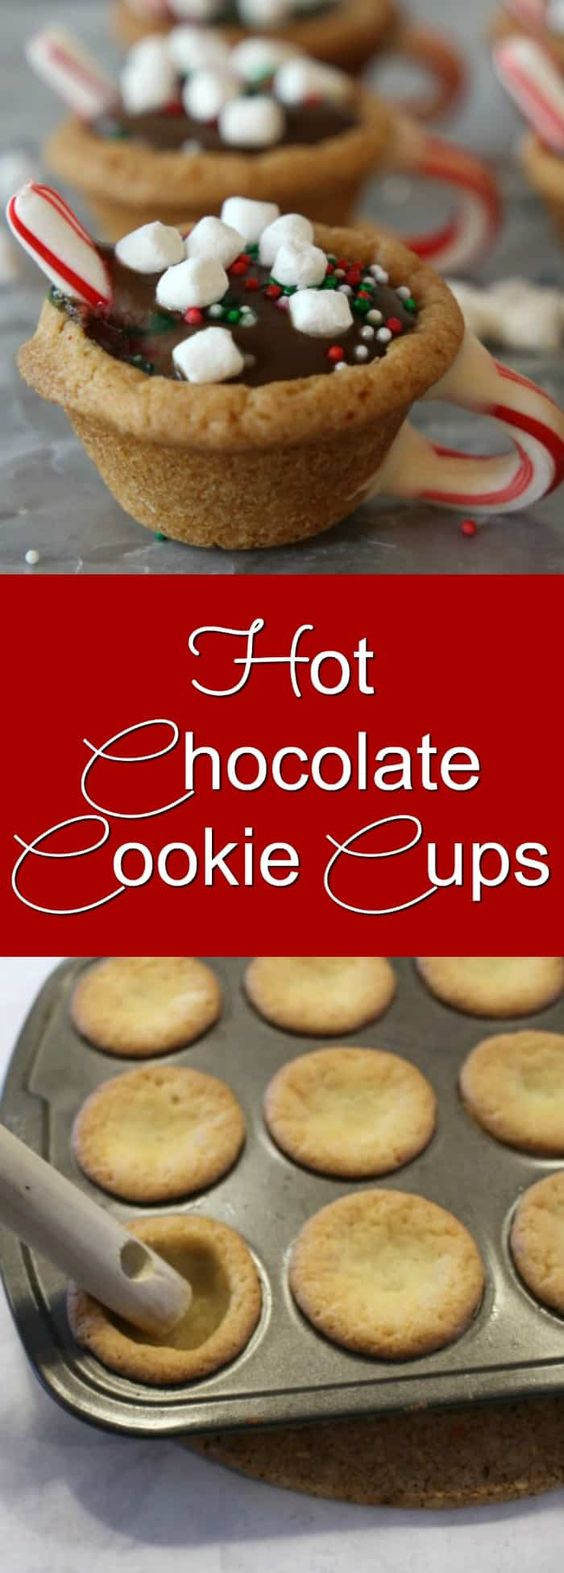 These Hot Chocolate Cookie Cups are made with ready to bake sugar cookie dough and pudding cups! Perfect for Christmas parties or cookie exchanges or just to put a smile on someone's face #christmas #christmascookies #christmascookierecipes #easychristmascookie #christmascookieideas #sugarcookies #cookiecups #hotchocolate